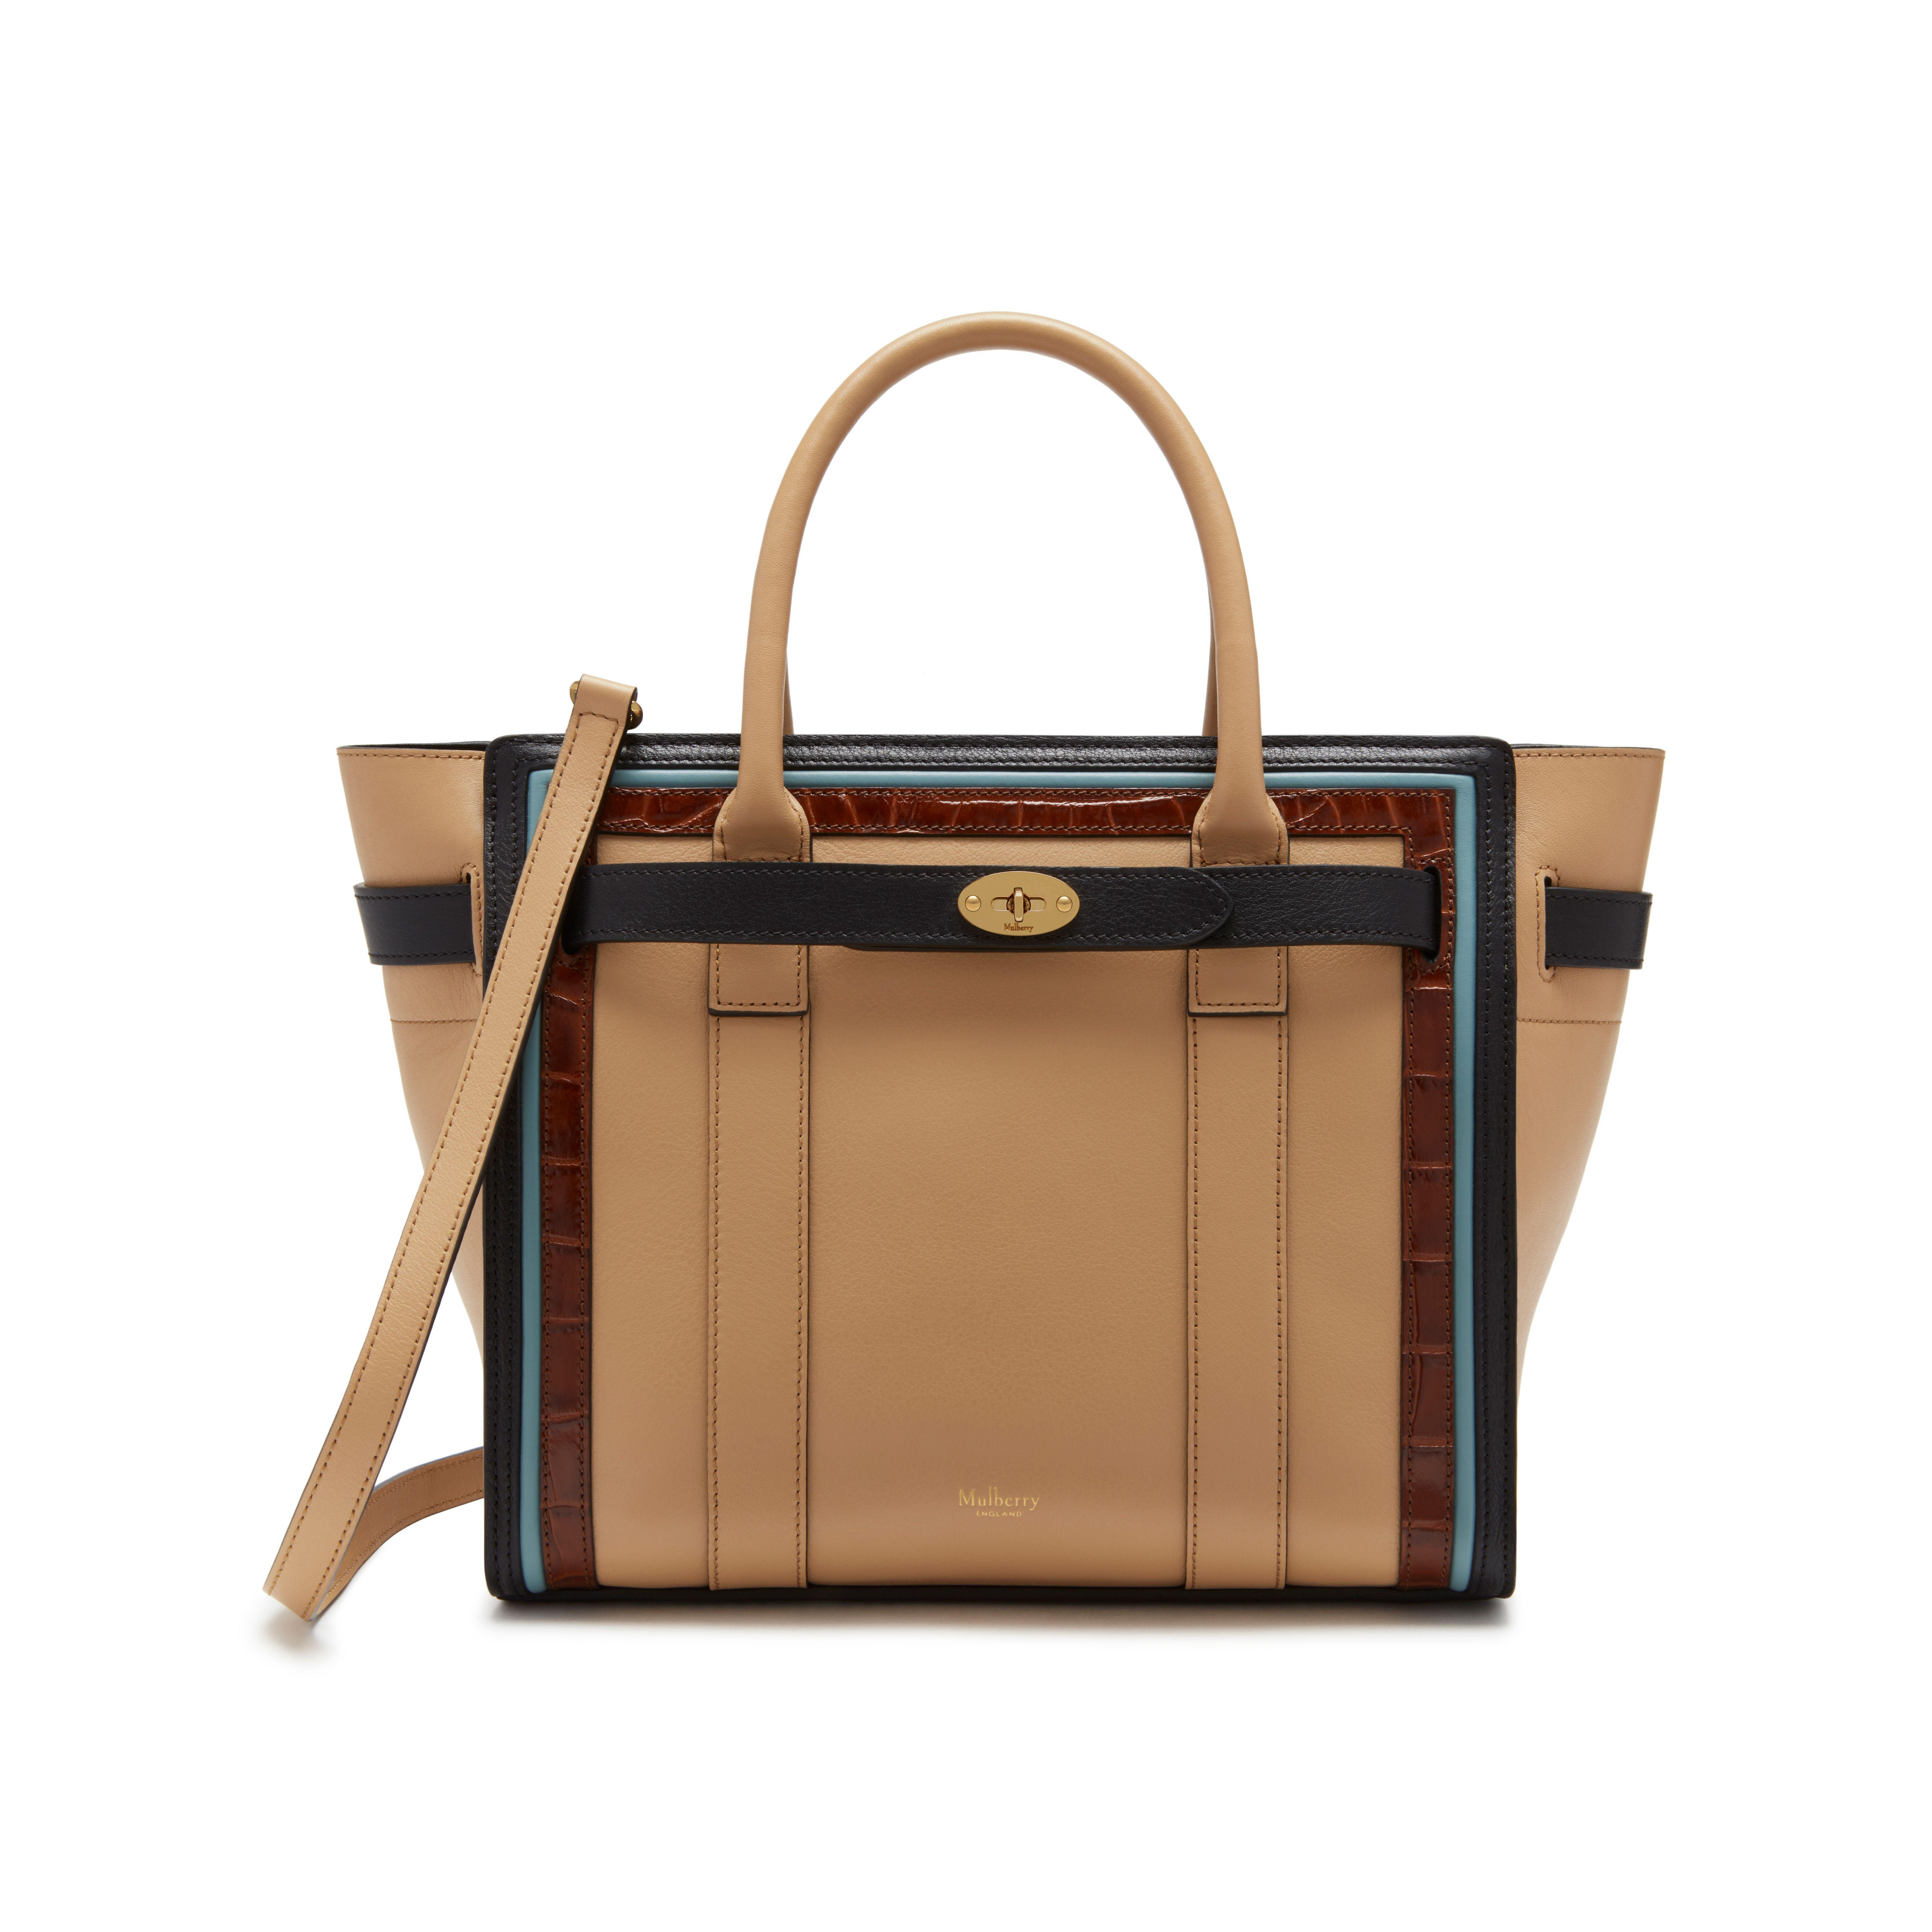 Lyst - Mulberry Small Zipped Bayswater in Black 957ee5e5c0